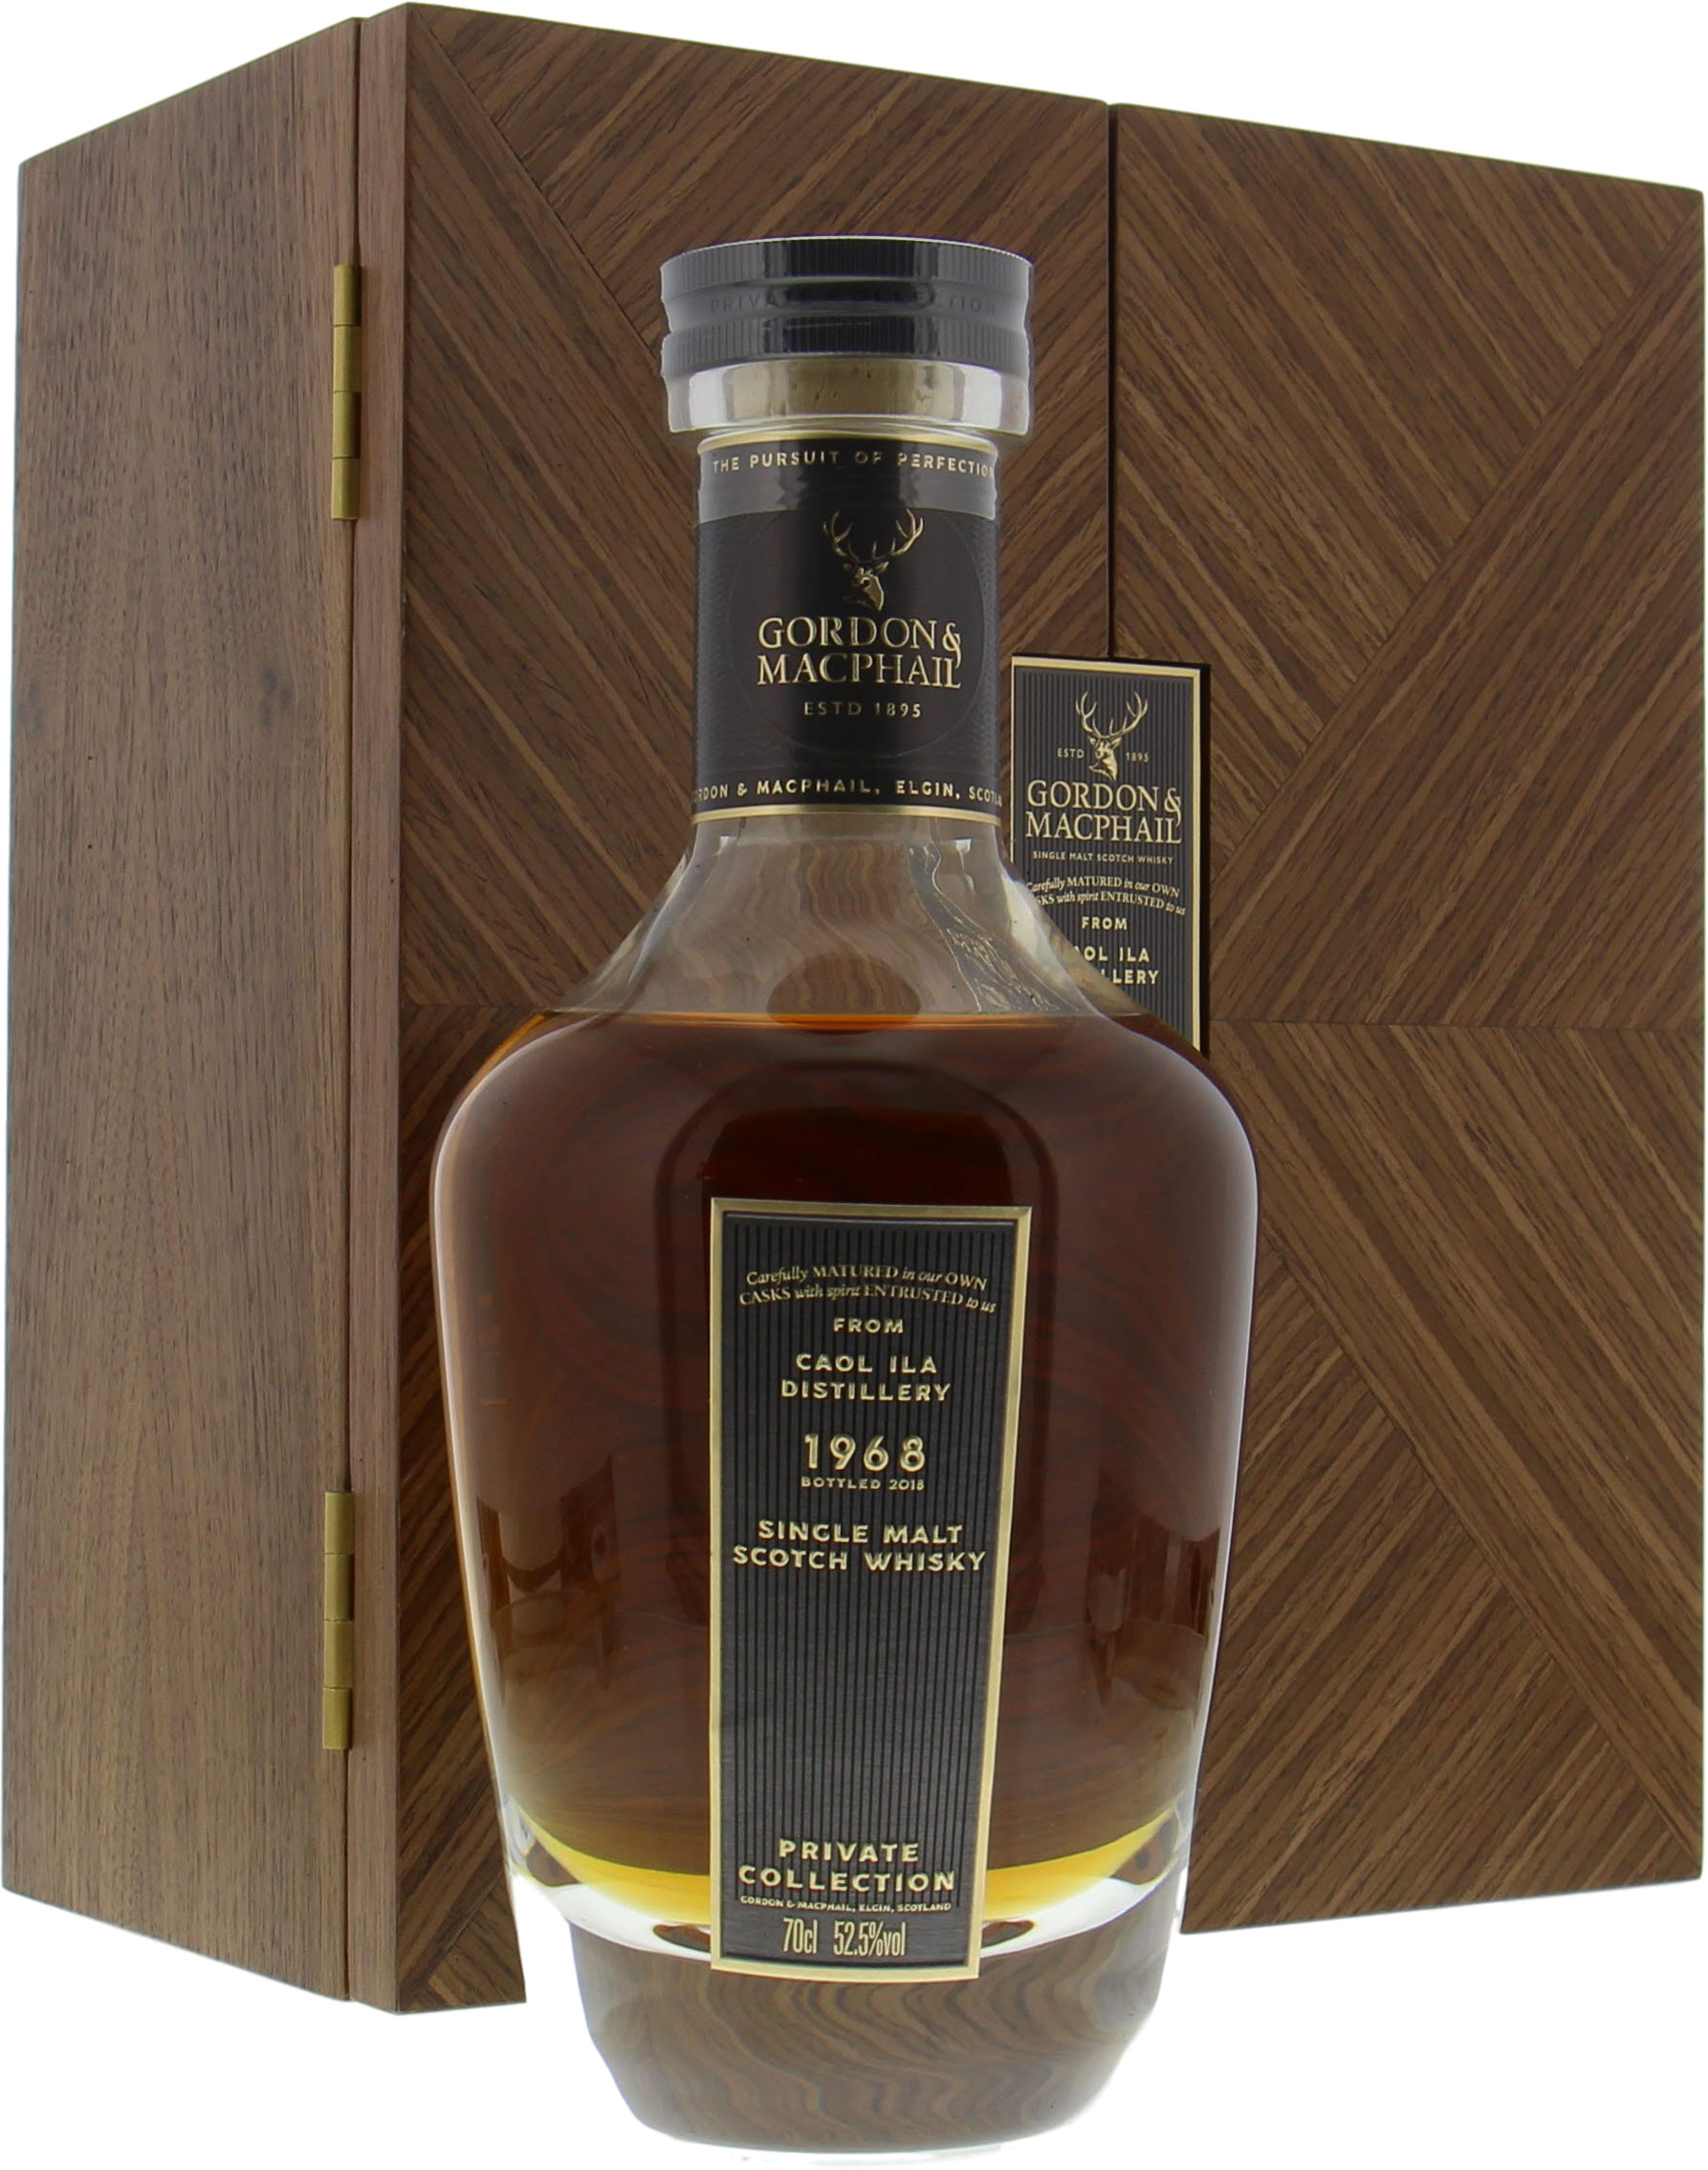 Caol Ila - 50 Years Old Gordon & MacPhail Private Collection Cask 4021901 52.5% 1968